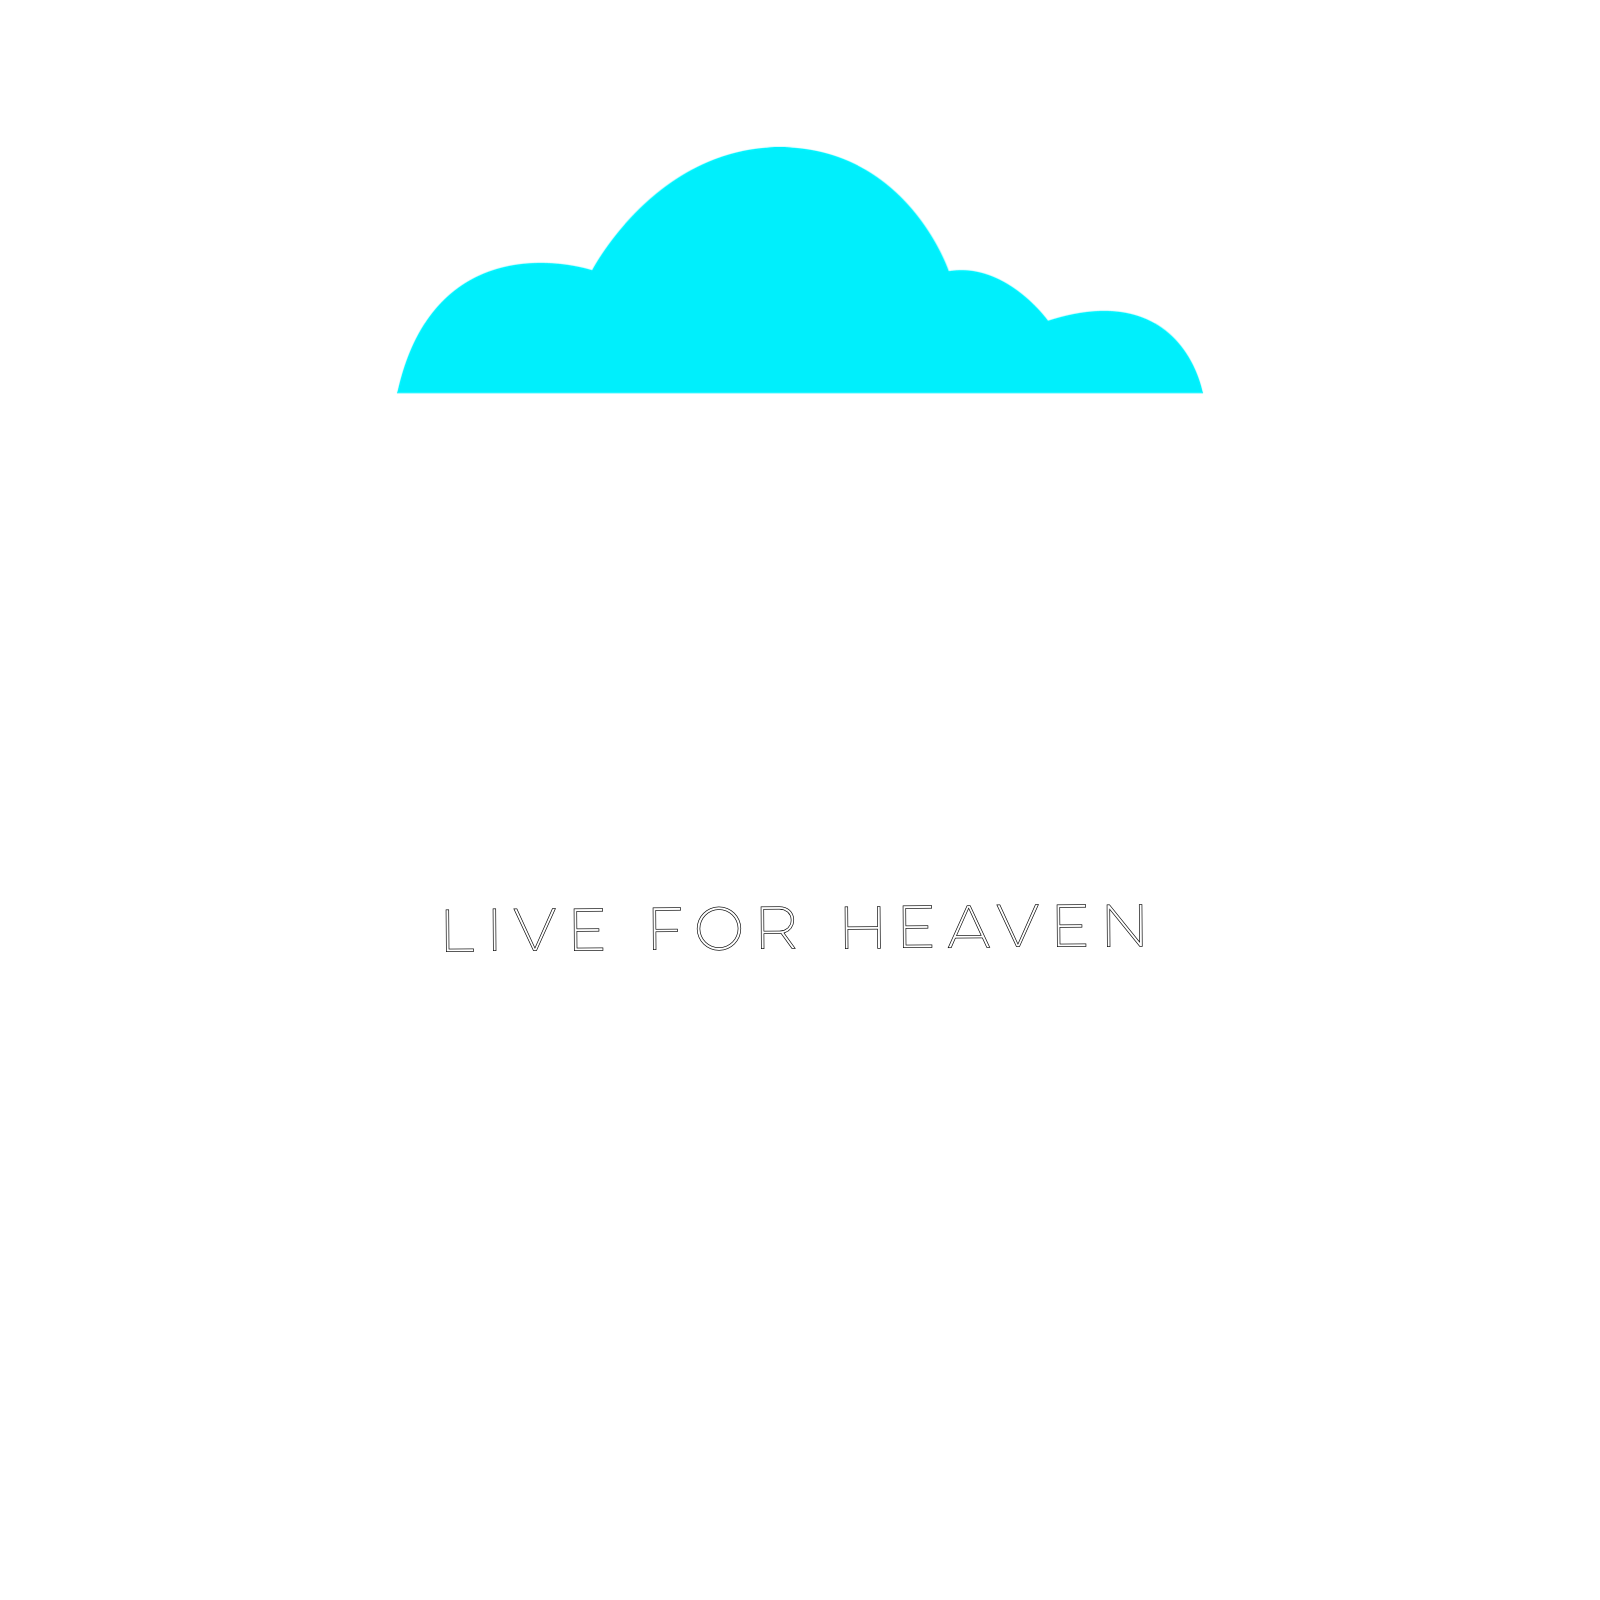 Live for Heaven